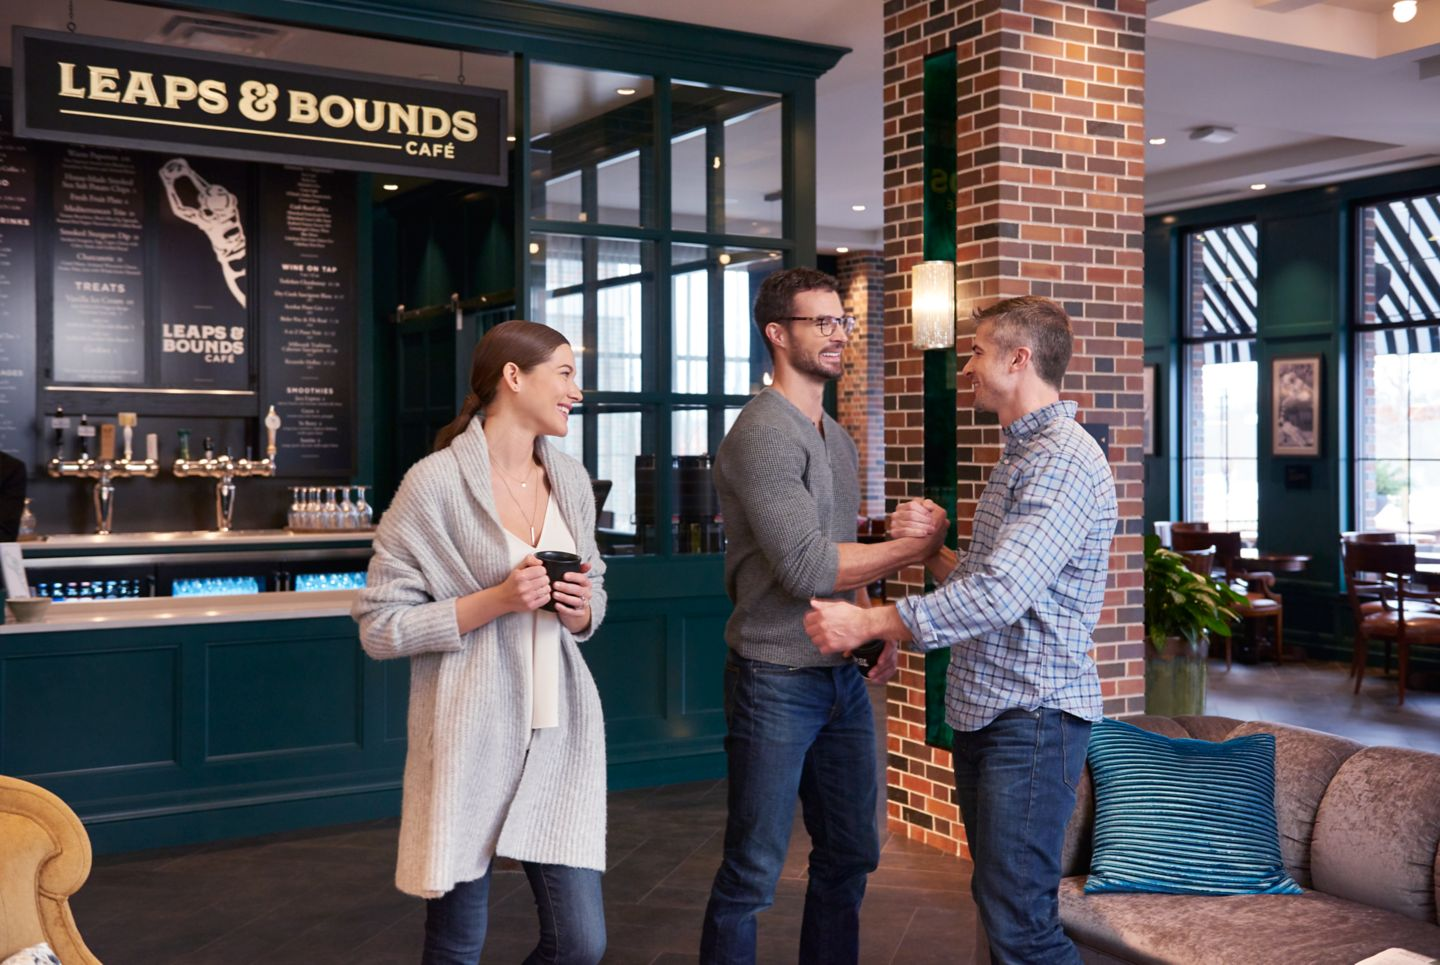 Leaps & Bounds Café